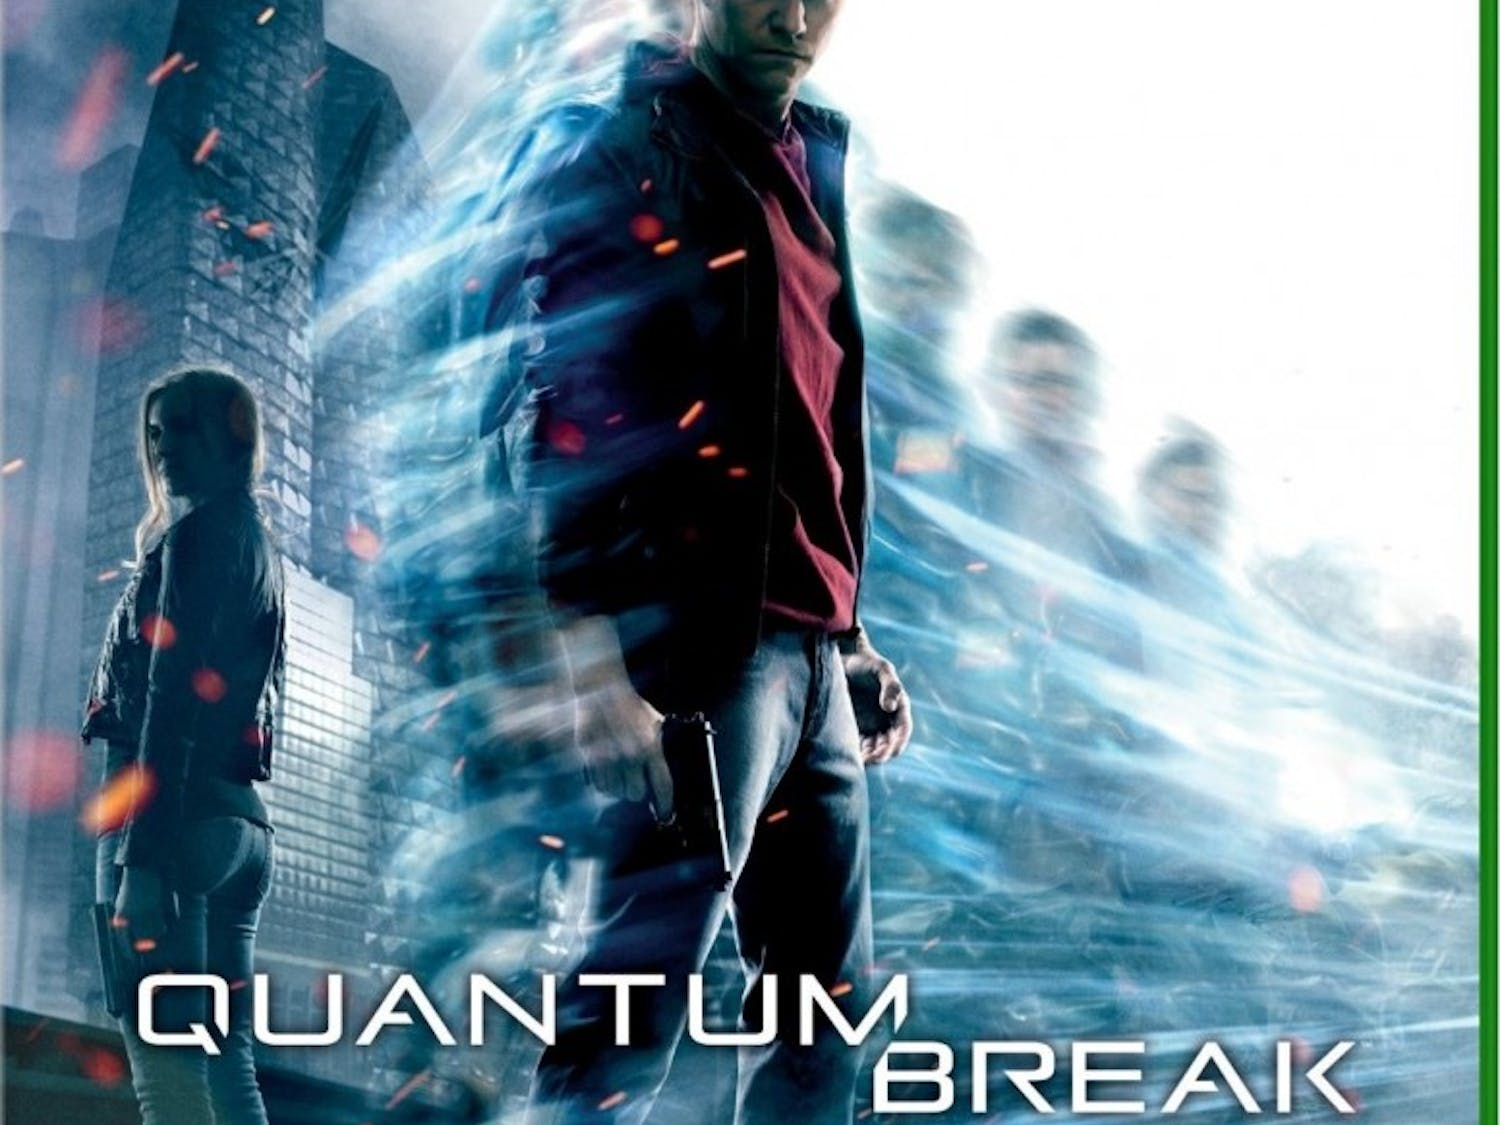 """After you finish a mission in """"Quantum Break,"""" an episode of a TV show style series plays, with real actors and actresses, based on the choices you made in the game."""